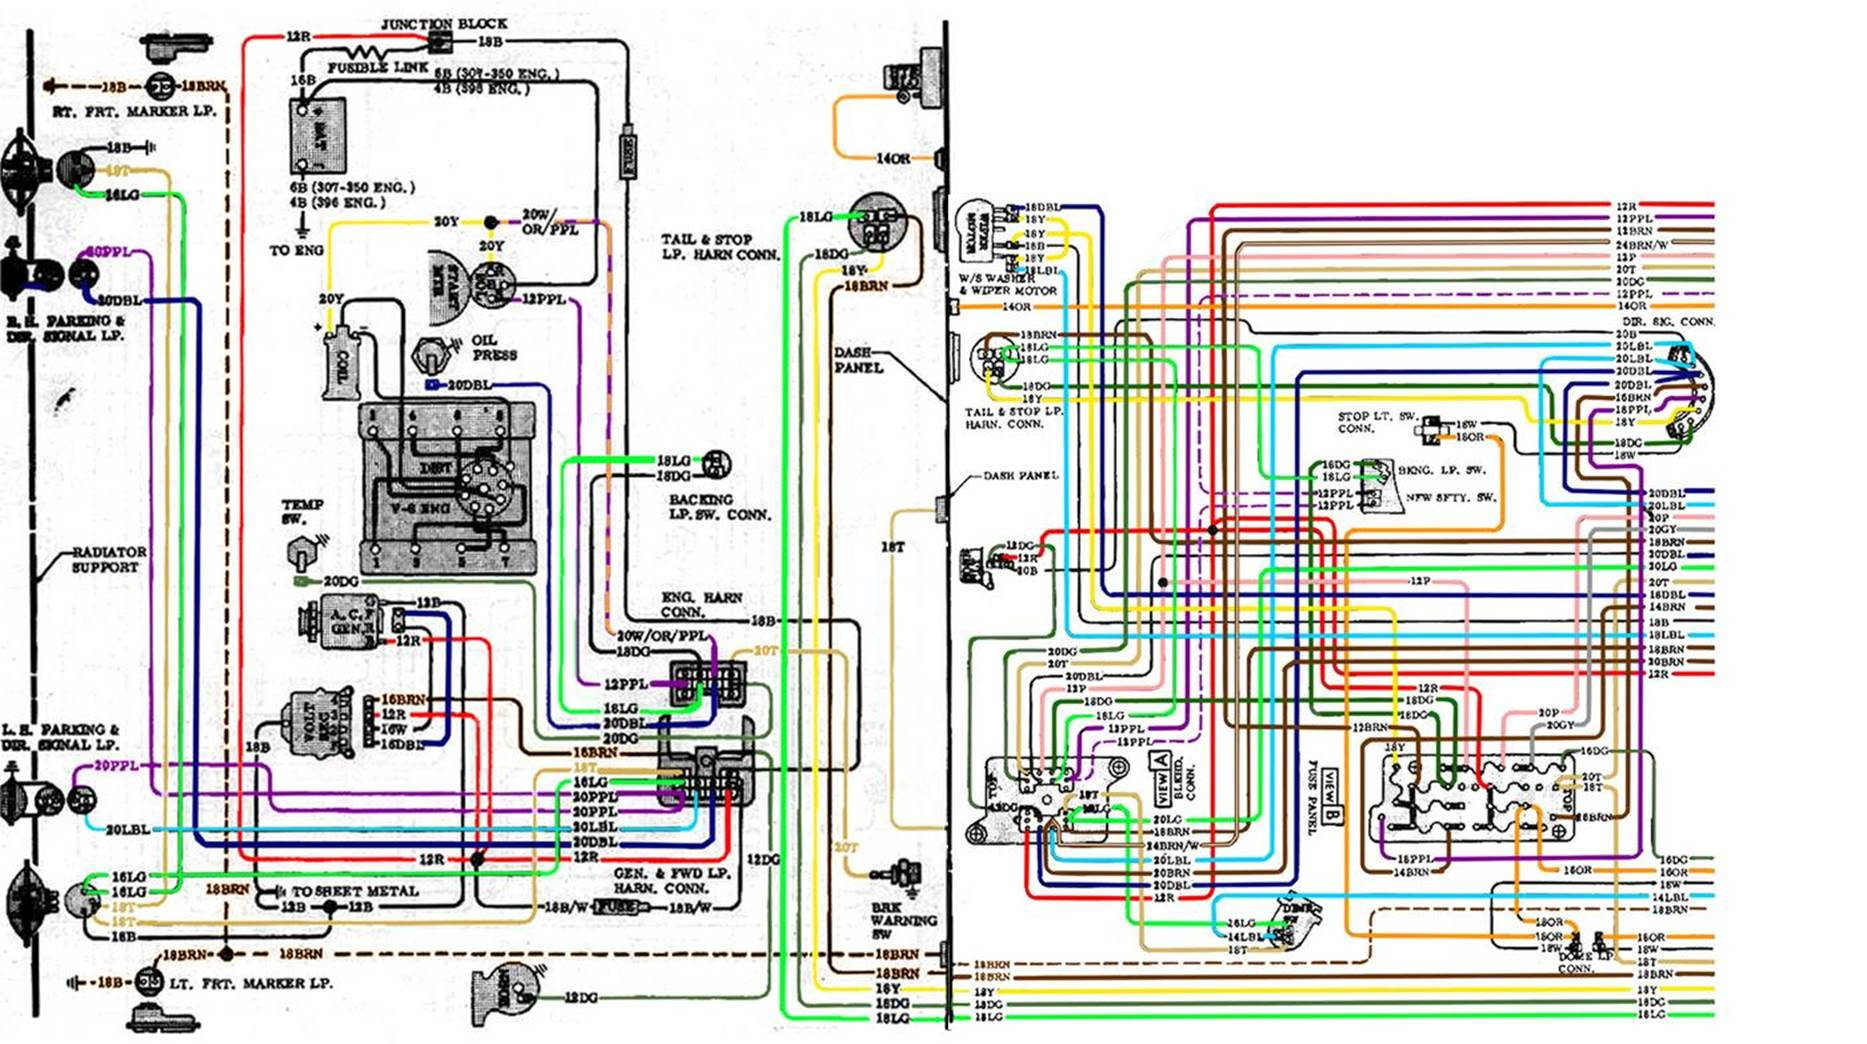 image002 72 c10 wiring diagram chevy truck wiring diagram \u2022 wiring diagrams 1969 chevy nova wiring diagram at n-0.co